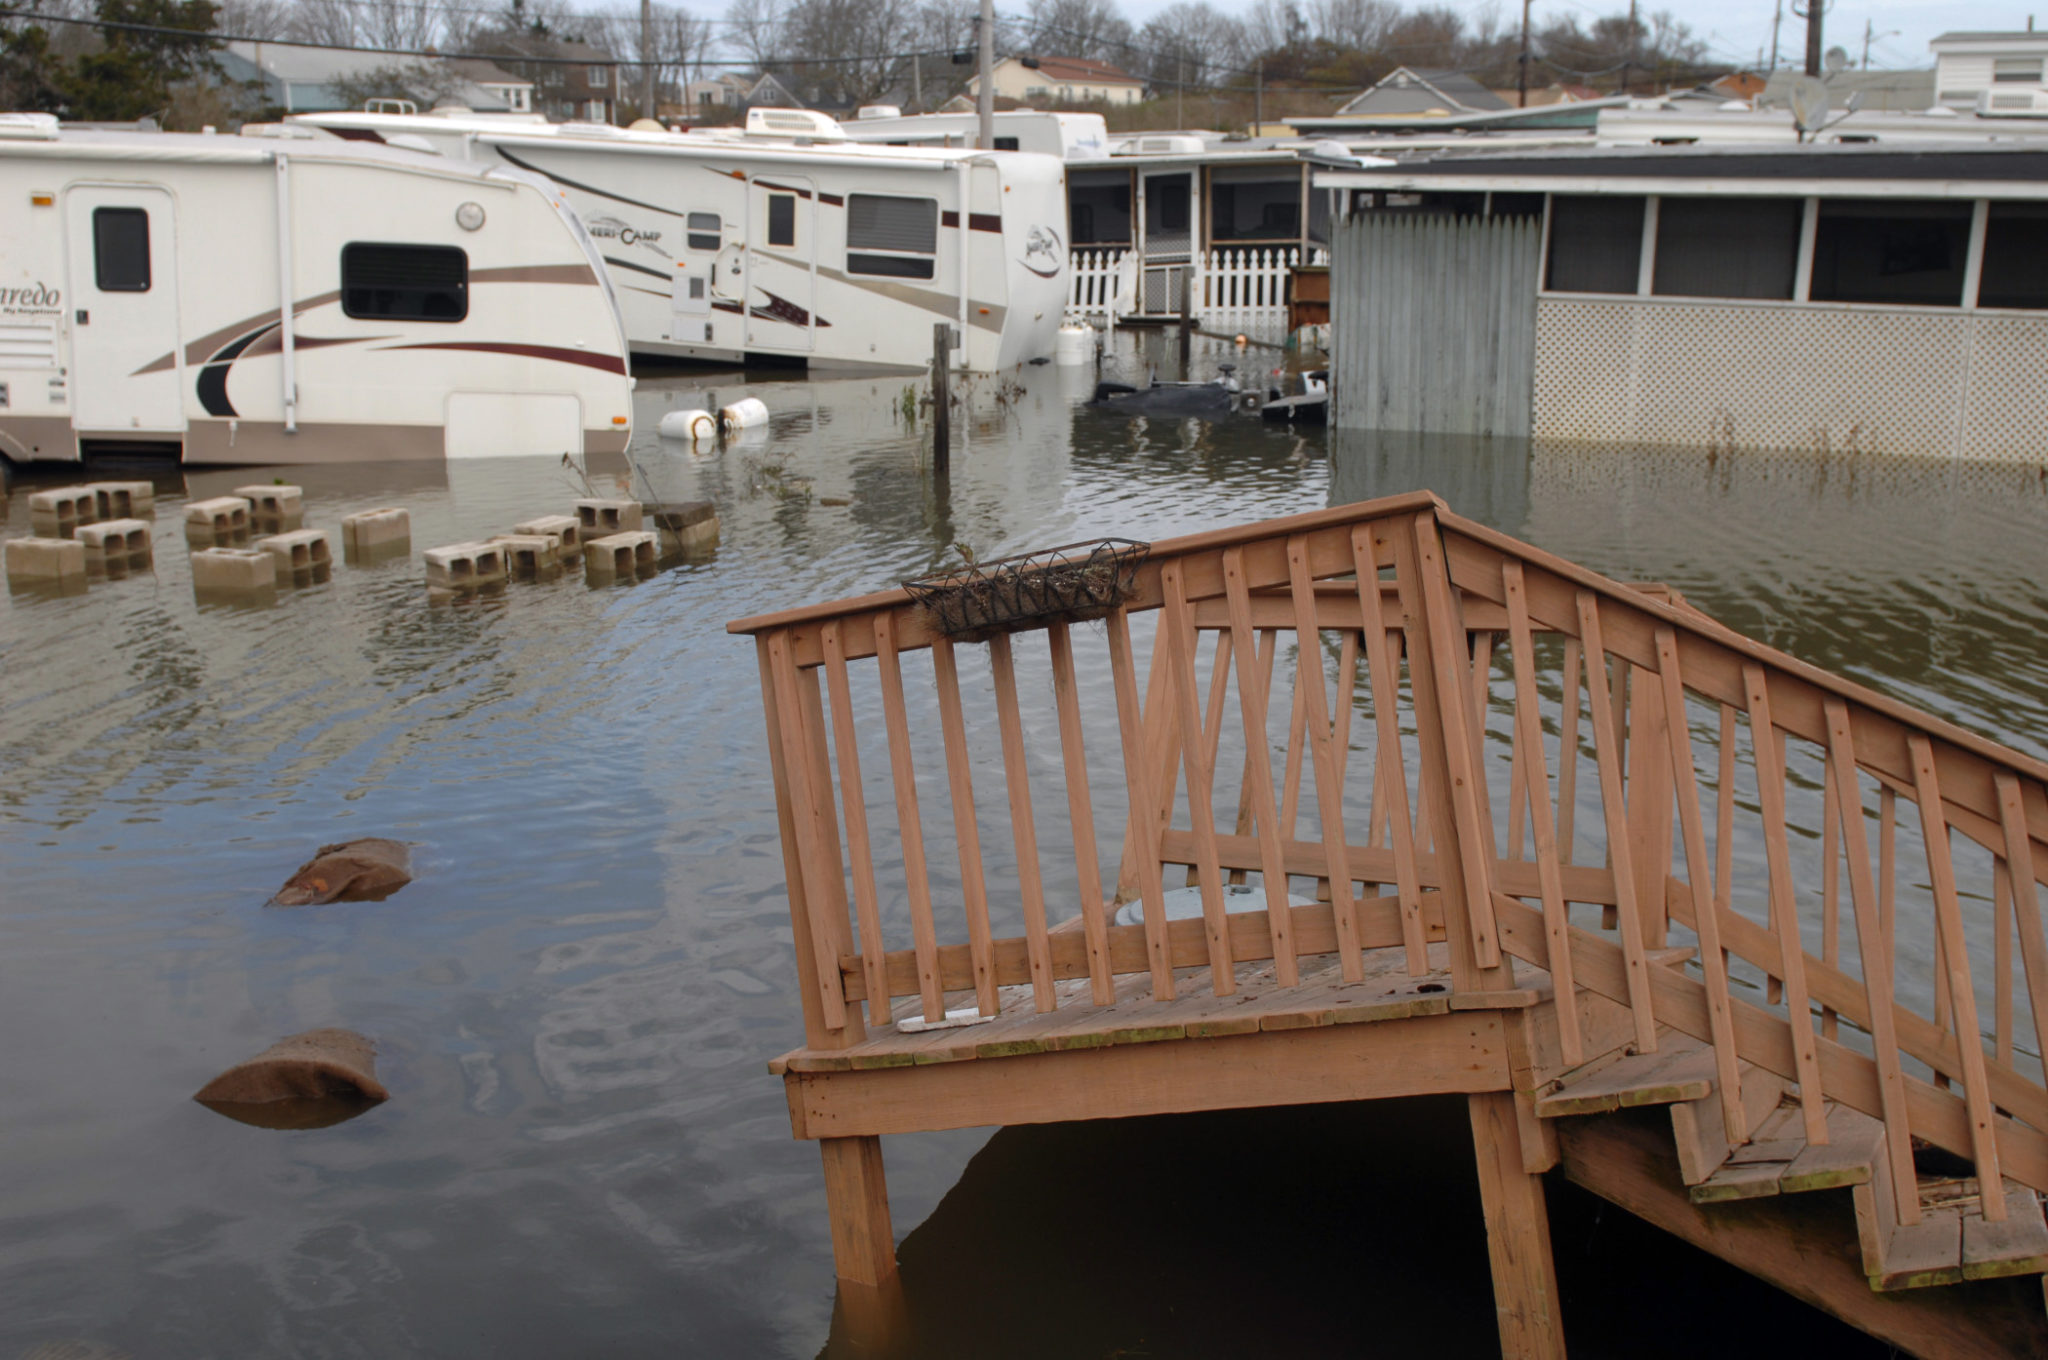 A CHANGE HAS COME: A trailer park on Matunuck Beach Road, South Kingstown, was flooded following Hurricane Sandy in 2012. Climate scientists believe that climate change is warming the planet and will result in more frequent and more powerful storms.